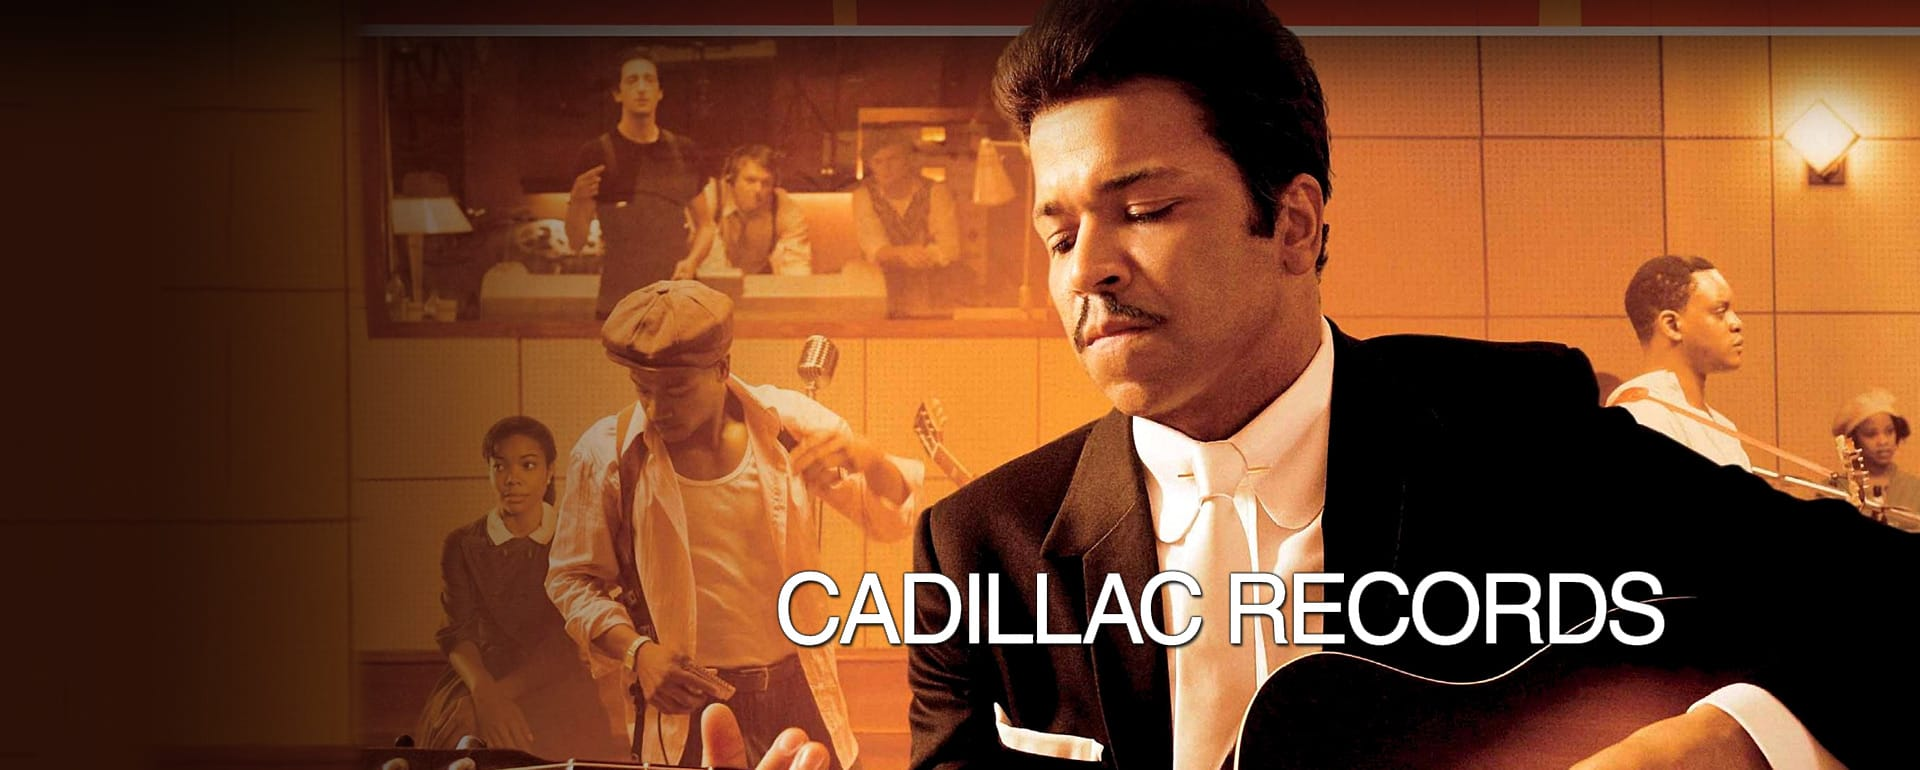 Watch Cadillac Records (English) Full Movie Online | ZEE5 | (Drama